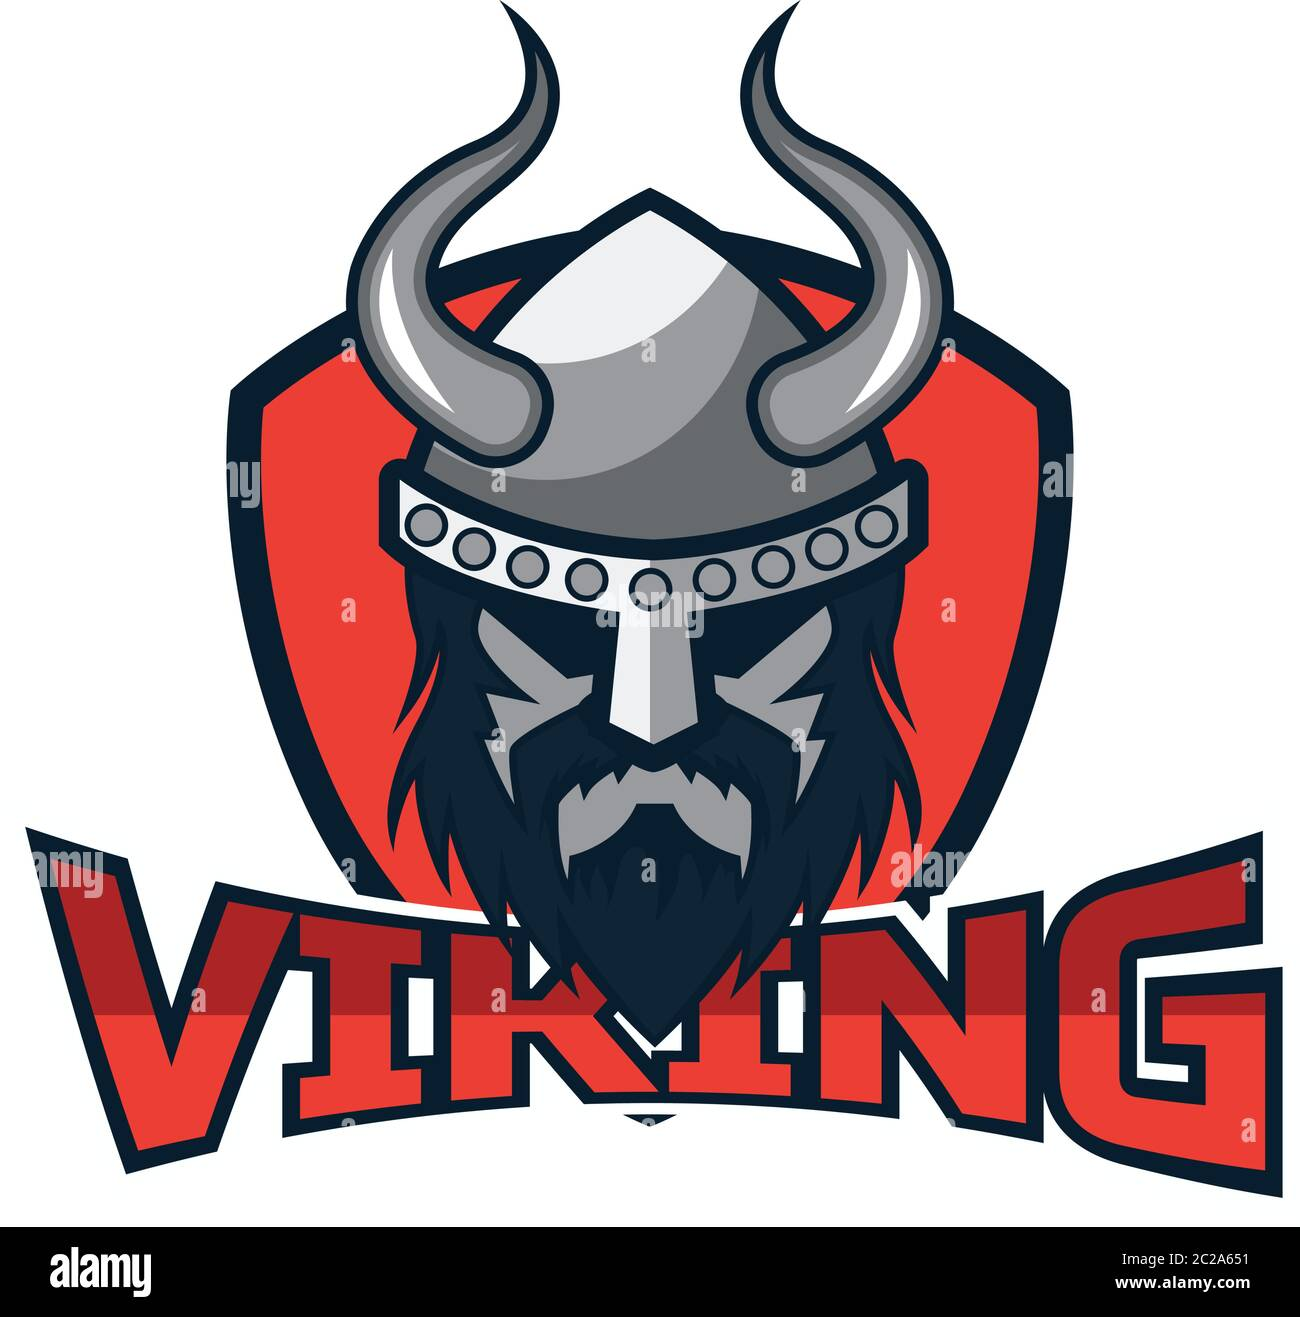 Viking Vector Vectors High Resolution Stock Photography And Images Alamy